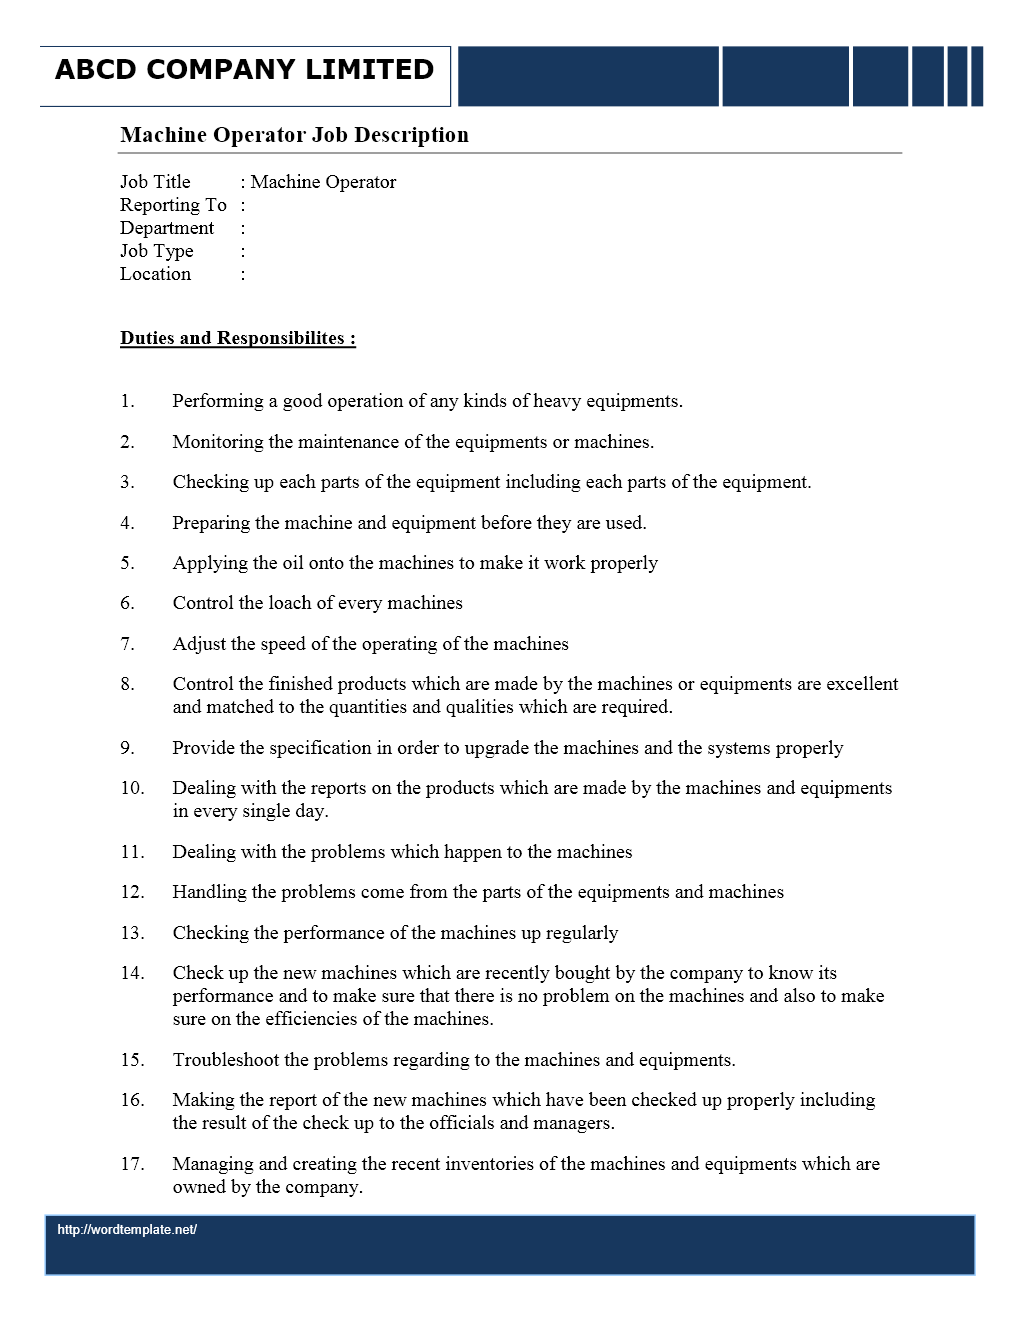 simple resume for machine operator job descriptions